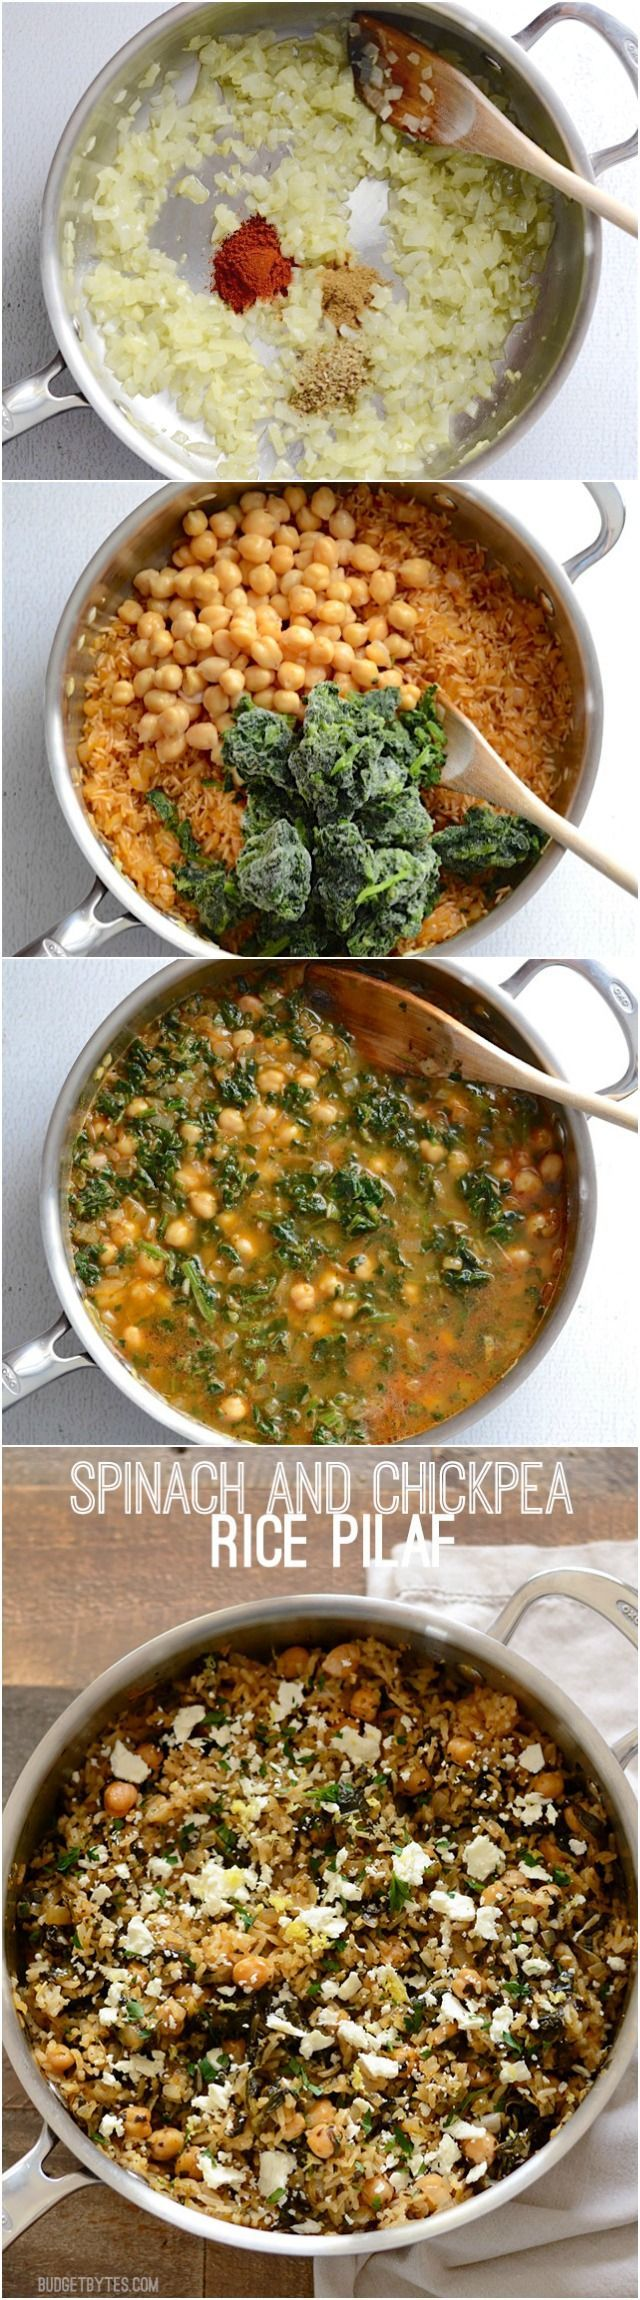 Best 25 vegetarian main dishes ideas on pinterest for Vegan main dish recipes